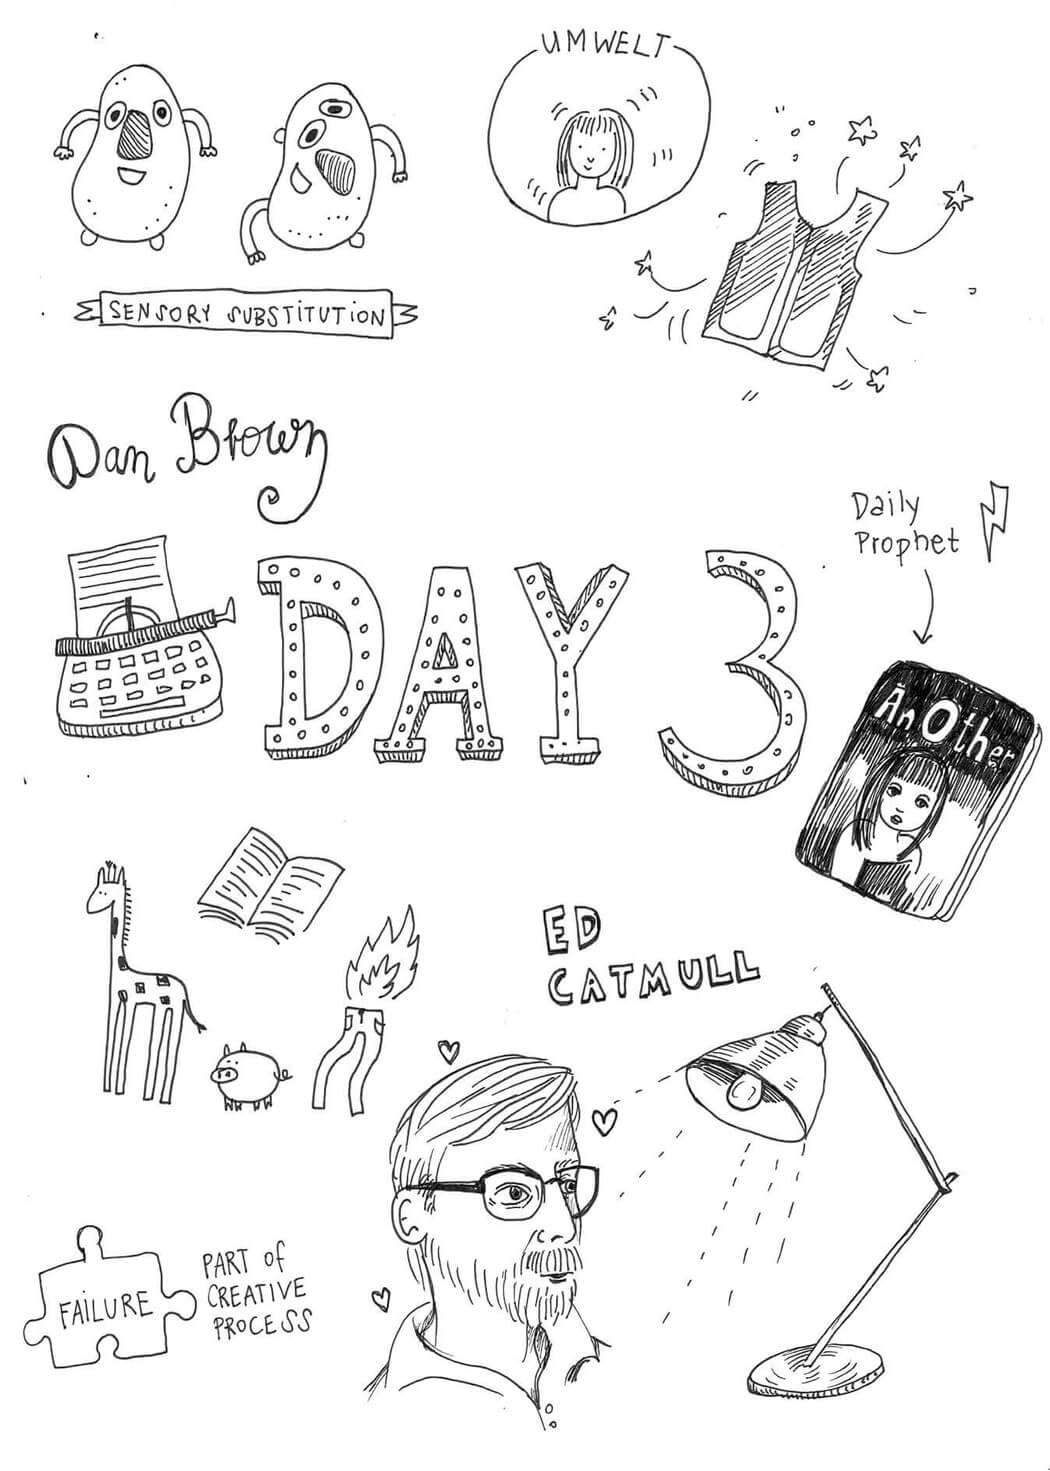 Illustrated notes from Web Summit Day 3